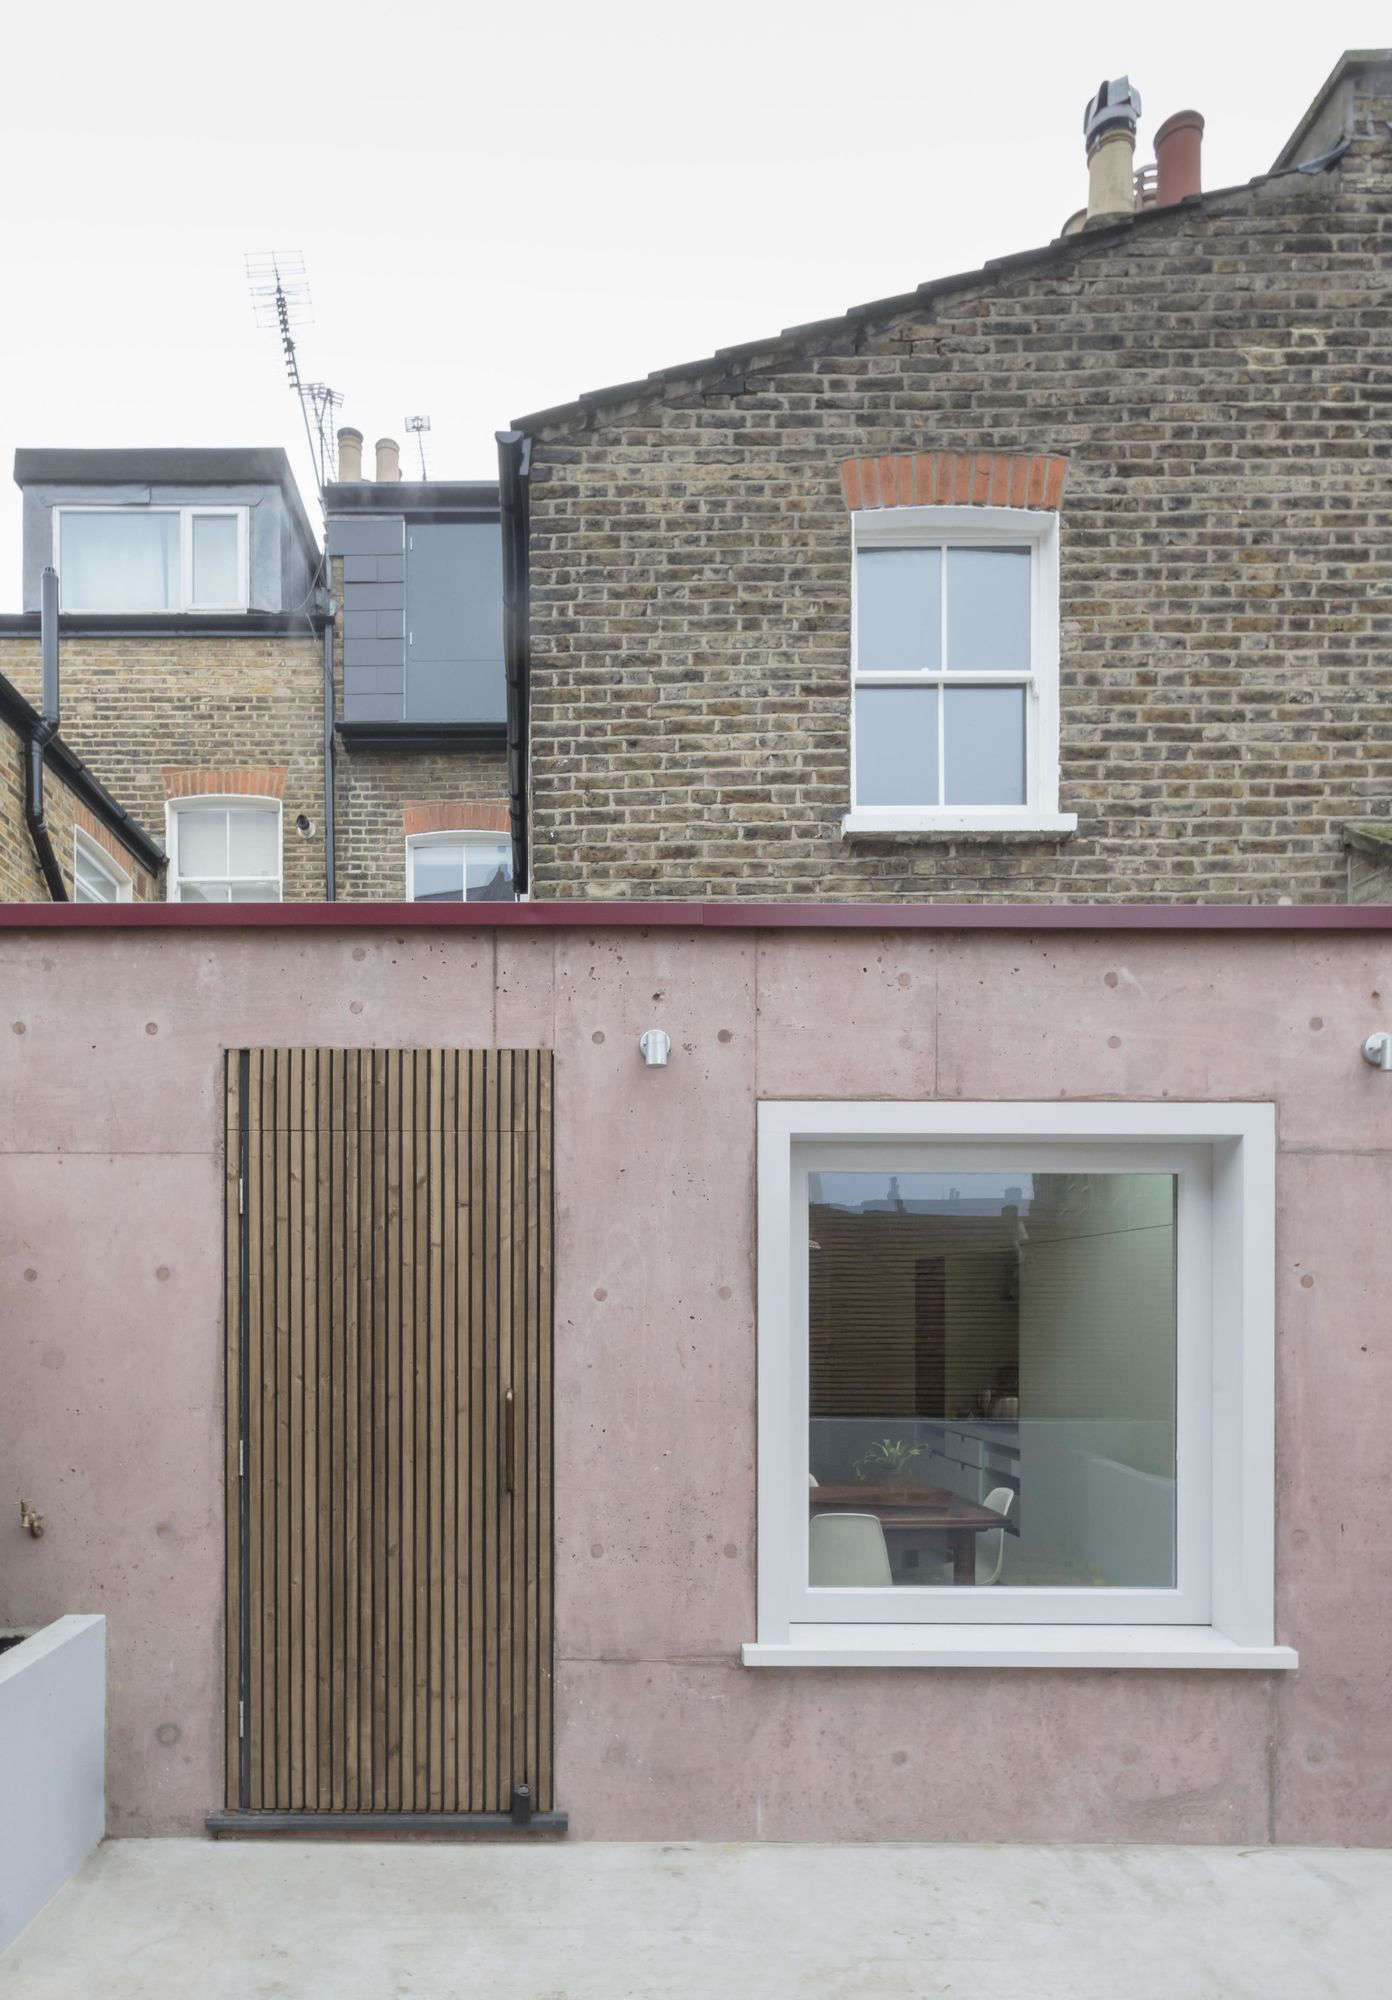 Situated in the back of the house, the six-square-meter (64.5-square-foot) extension features a pigmented cast concrete wall with a slatted wood door and integrated sliding glass window. The new courtyard—shown pre-plantings (it&#8